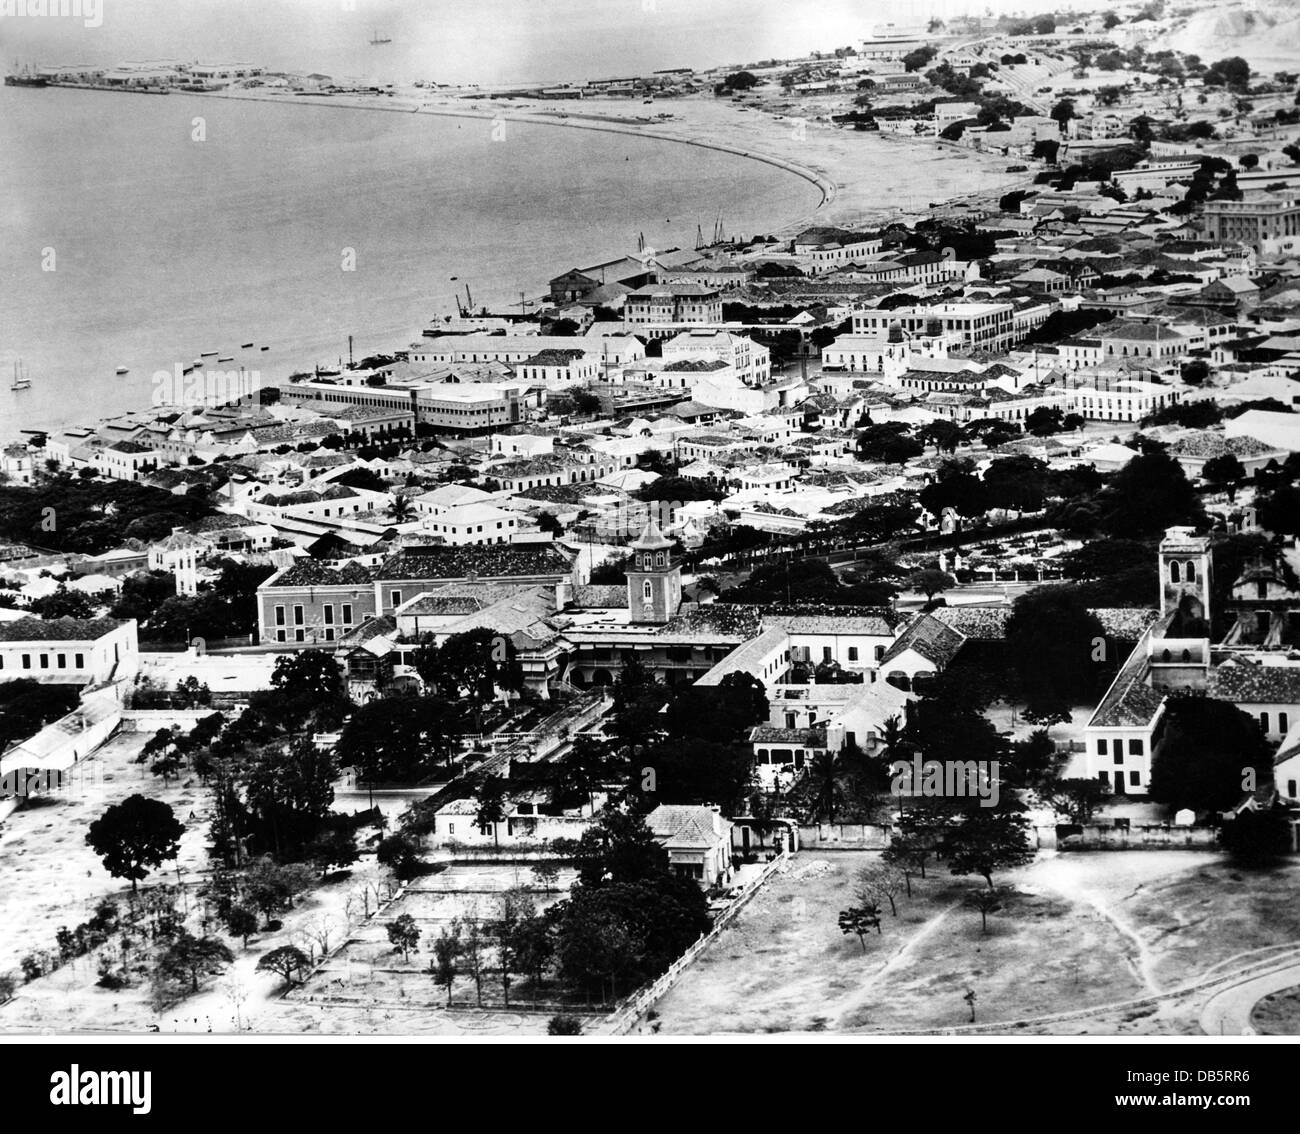 geography / travel, Angola, Luanda, city views / cityscapes, air view of the city and the coast, 1950s, Additional - Stock Image